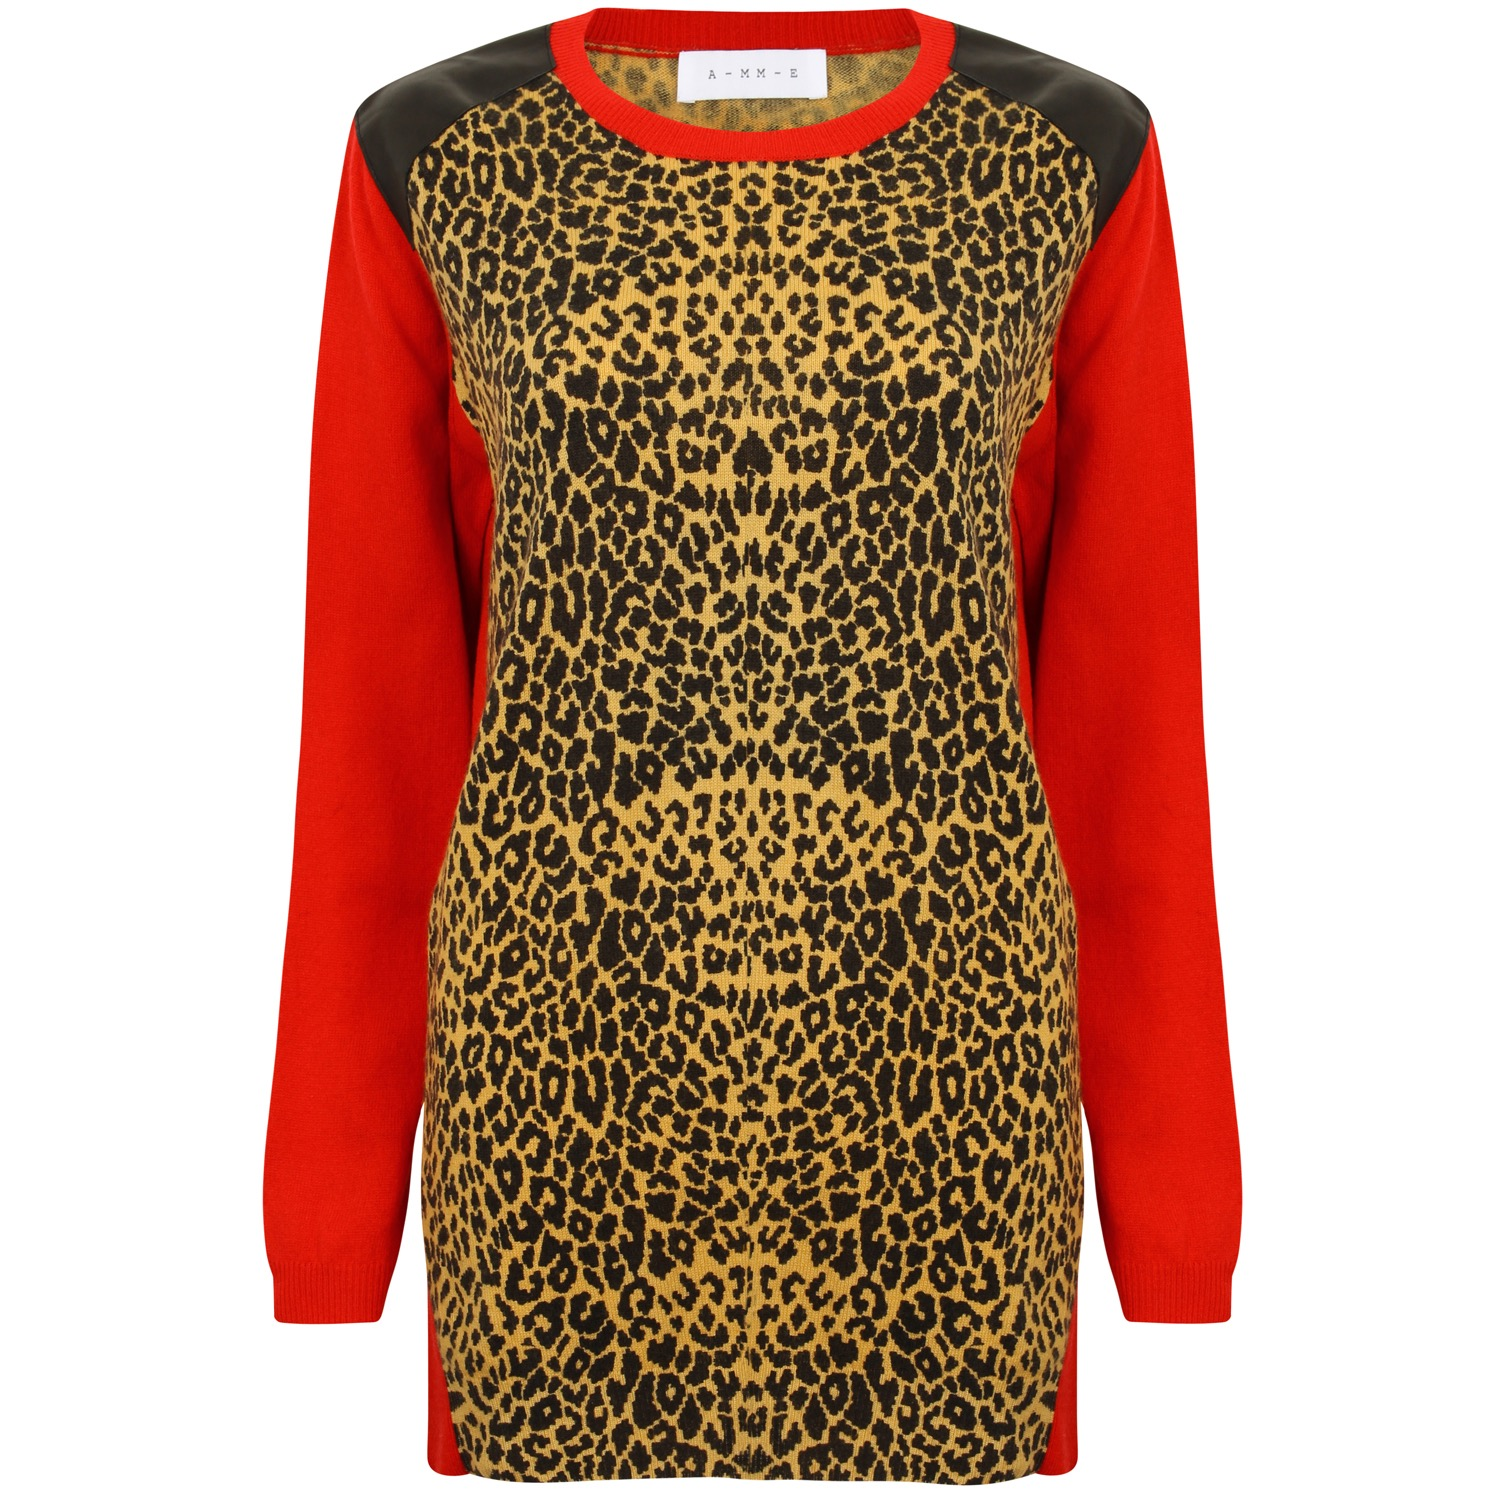 The Leo & Red Colour Block Cashmere